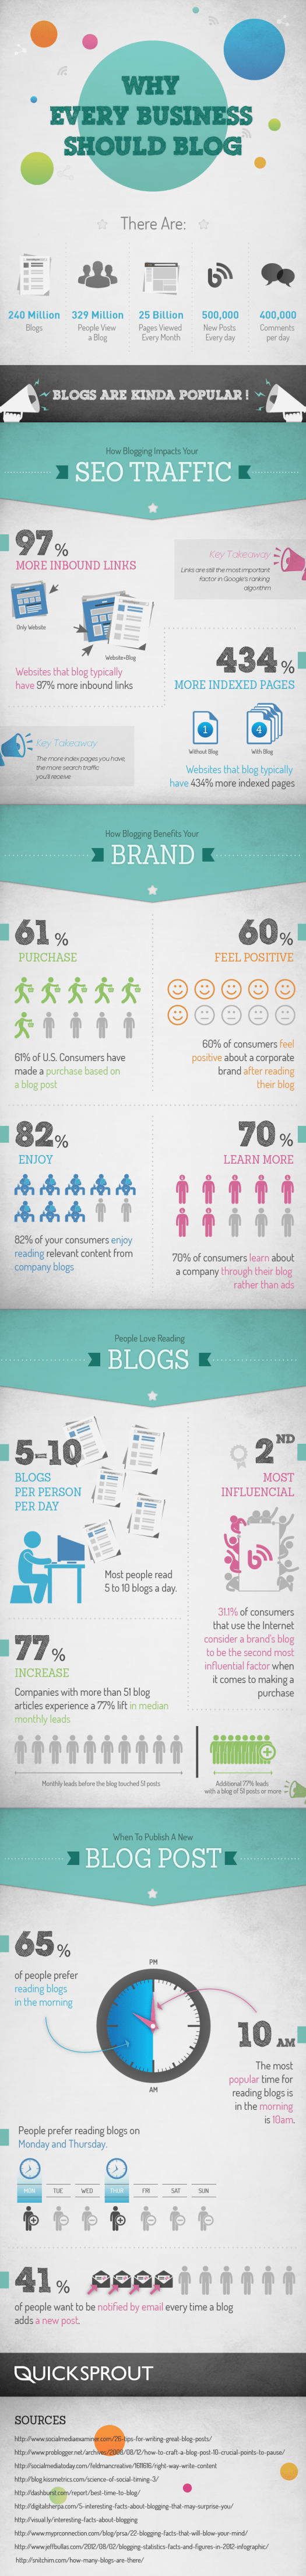 whyeverybusinessshouldblog - Why Every Healthcare Organization Should Blog (Including your Staff) [INFOGRAPHIC]